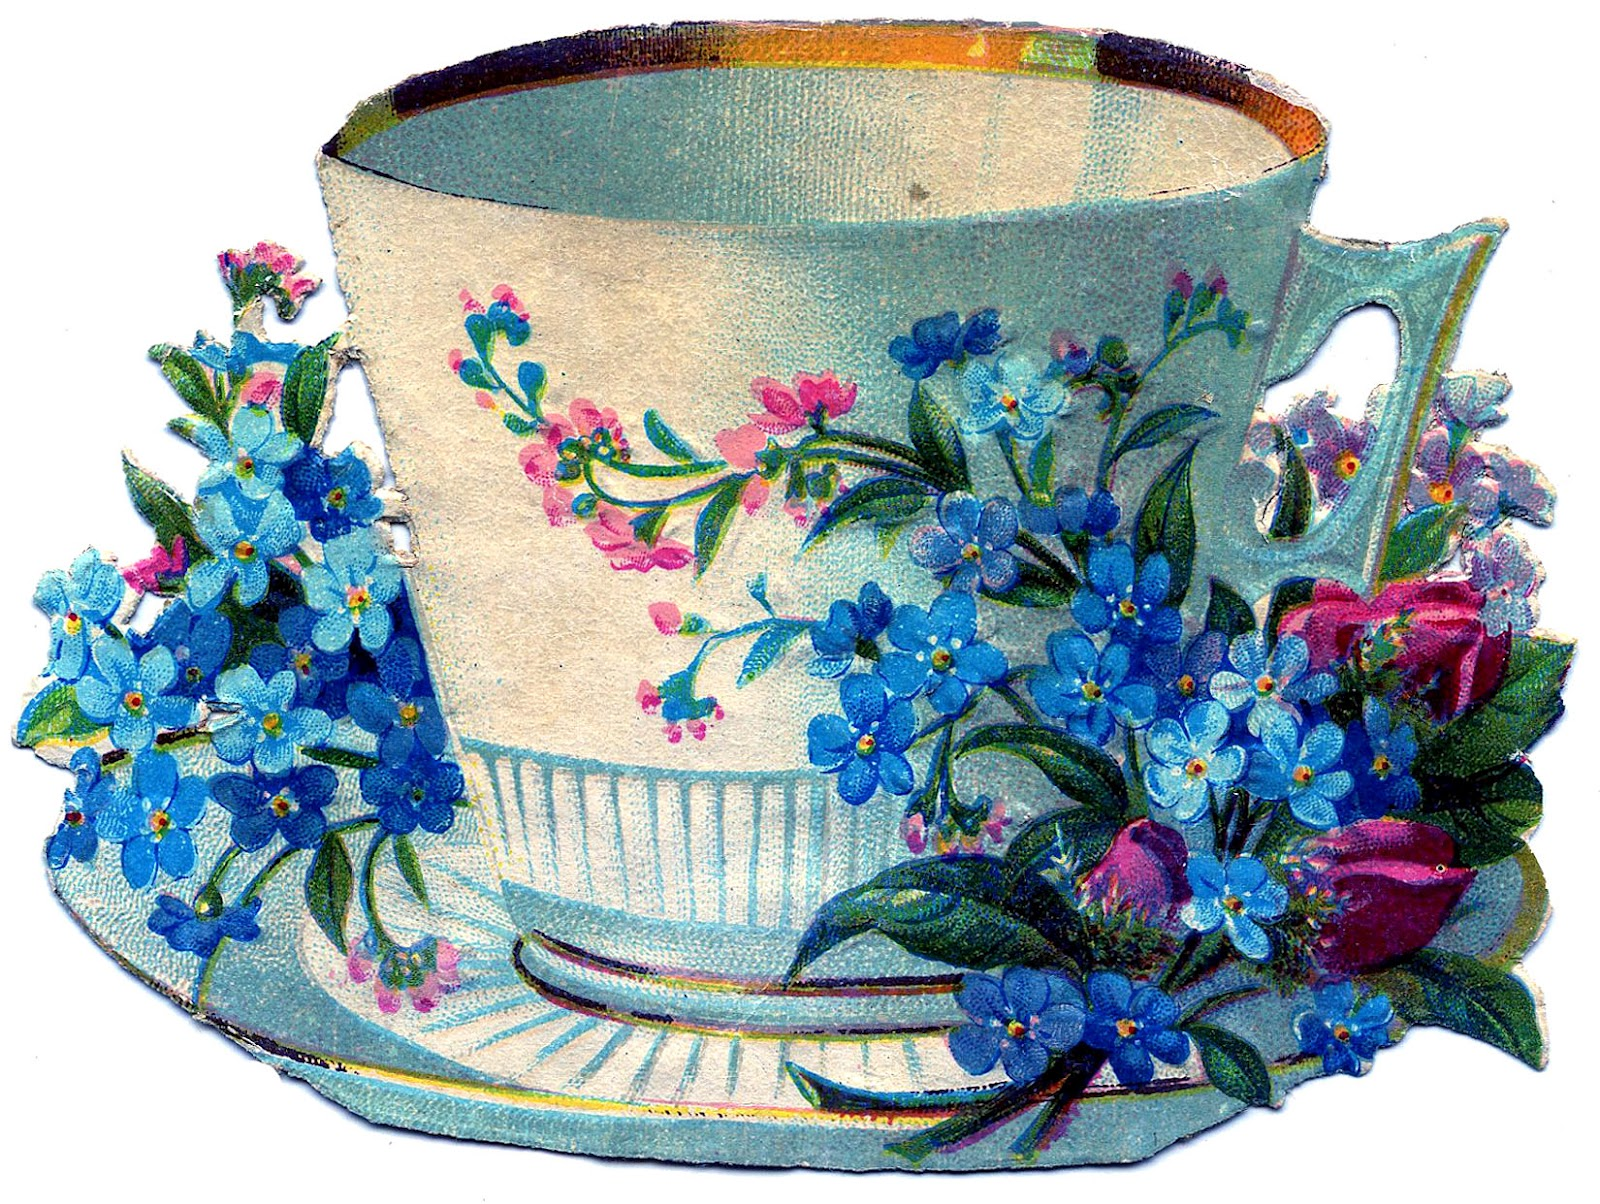 Another Gorgeous Tea Cup With Flowers